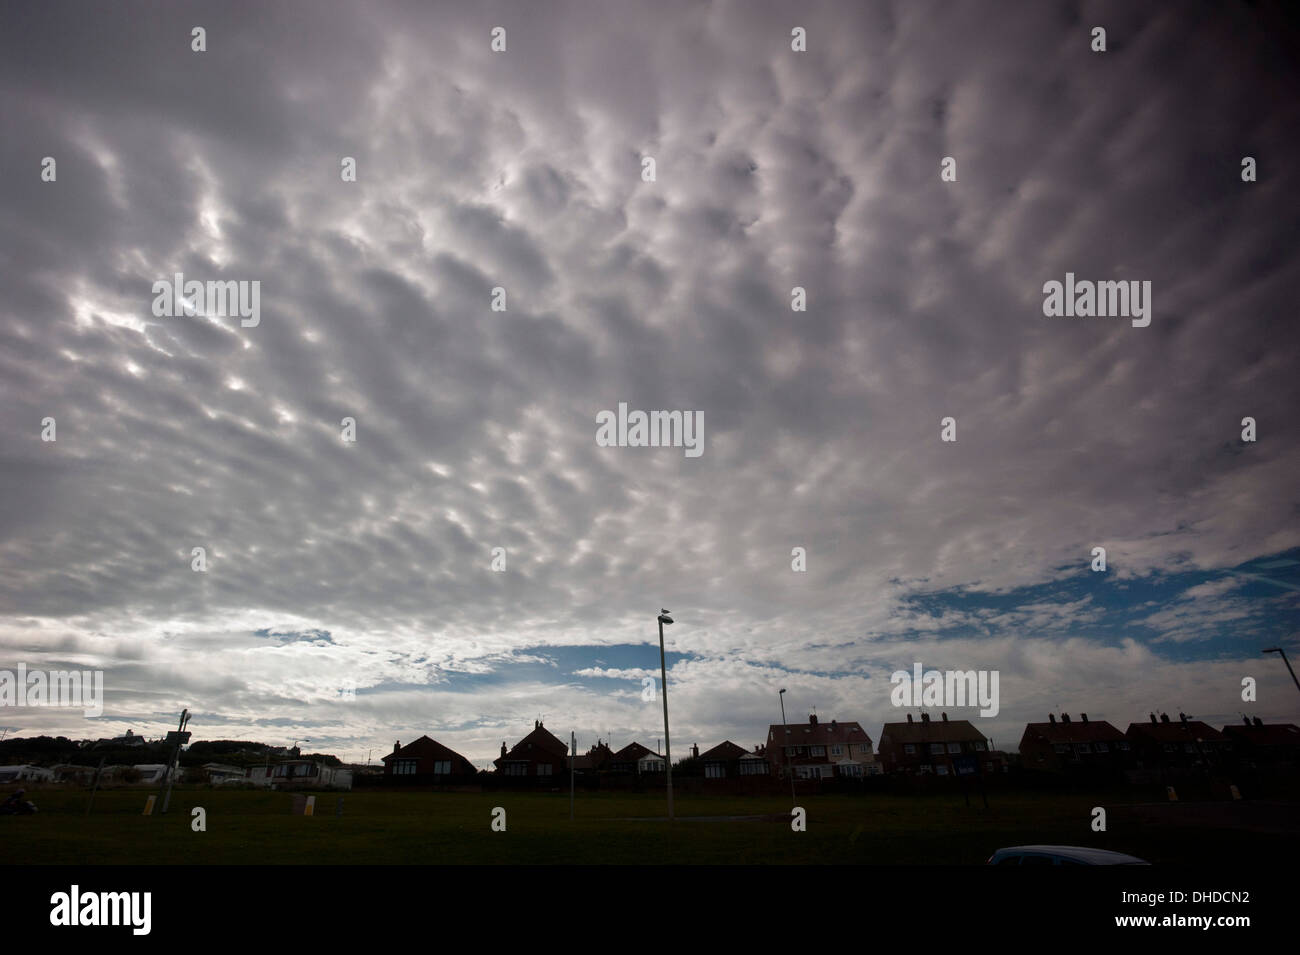 An Asperatus formation cloudbank of Stratocumulus clouds loom over suburban houses on the seafront at South Shields, Tyne and Wear. - Stock Image